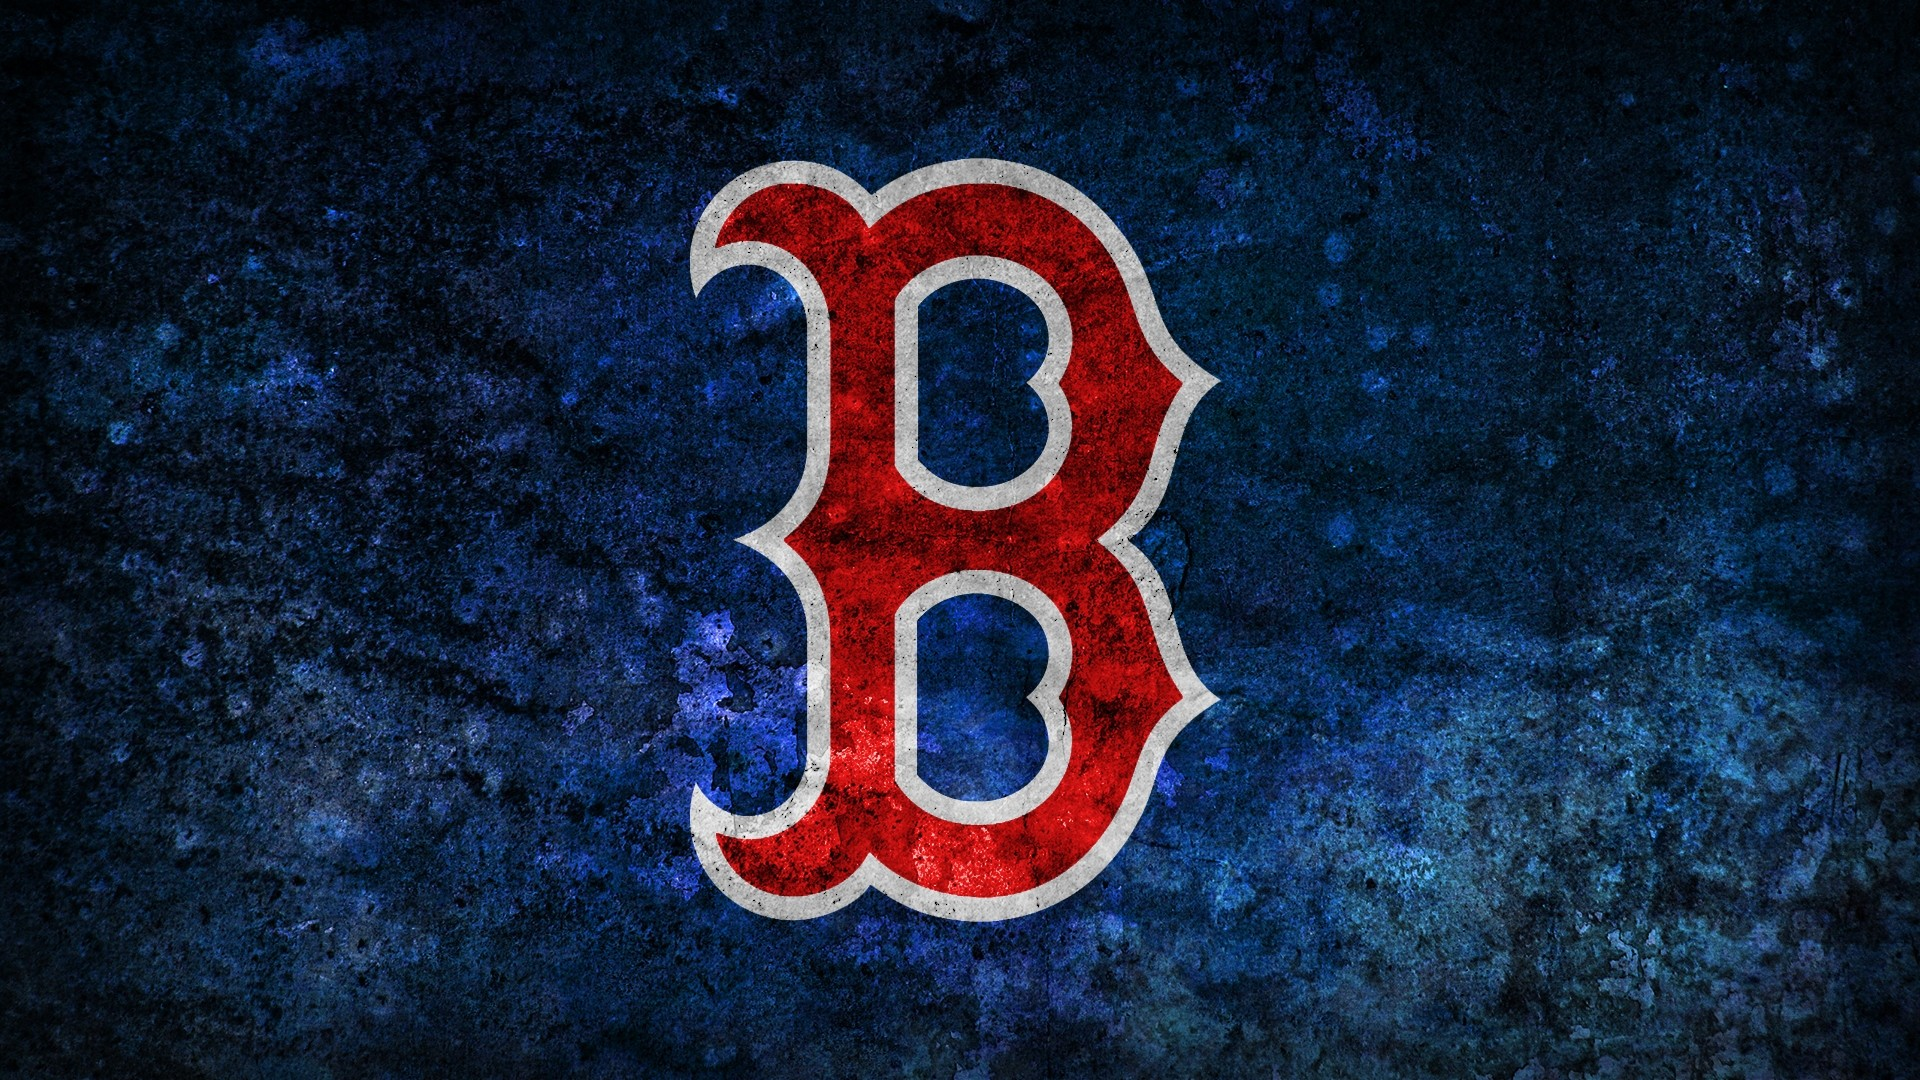 Red Sox HD Download